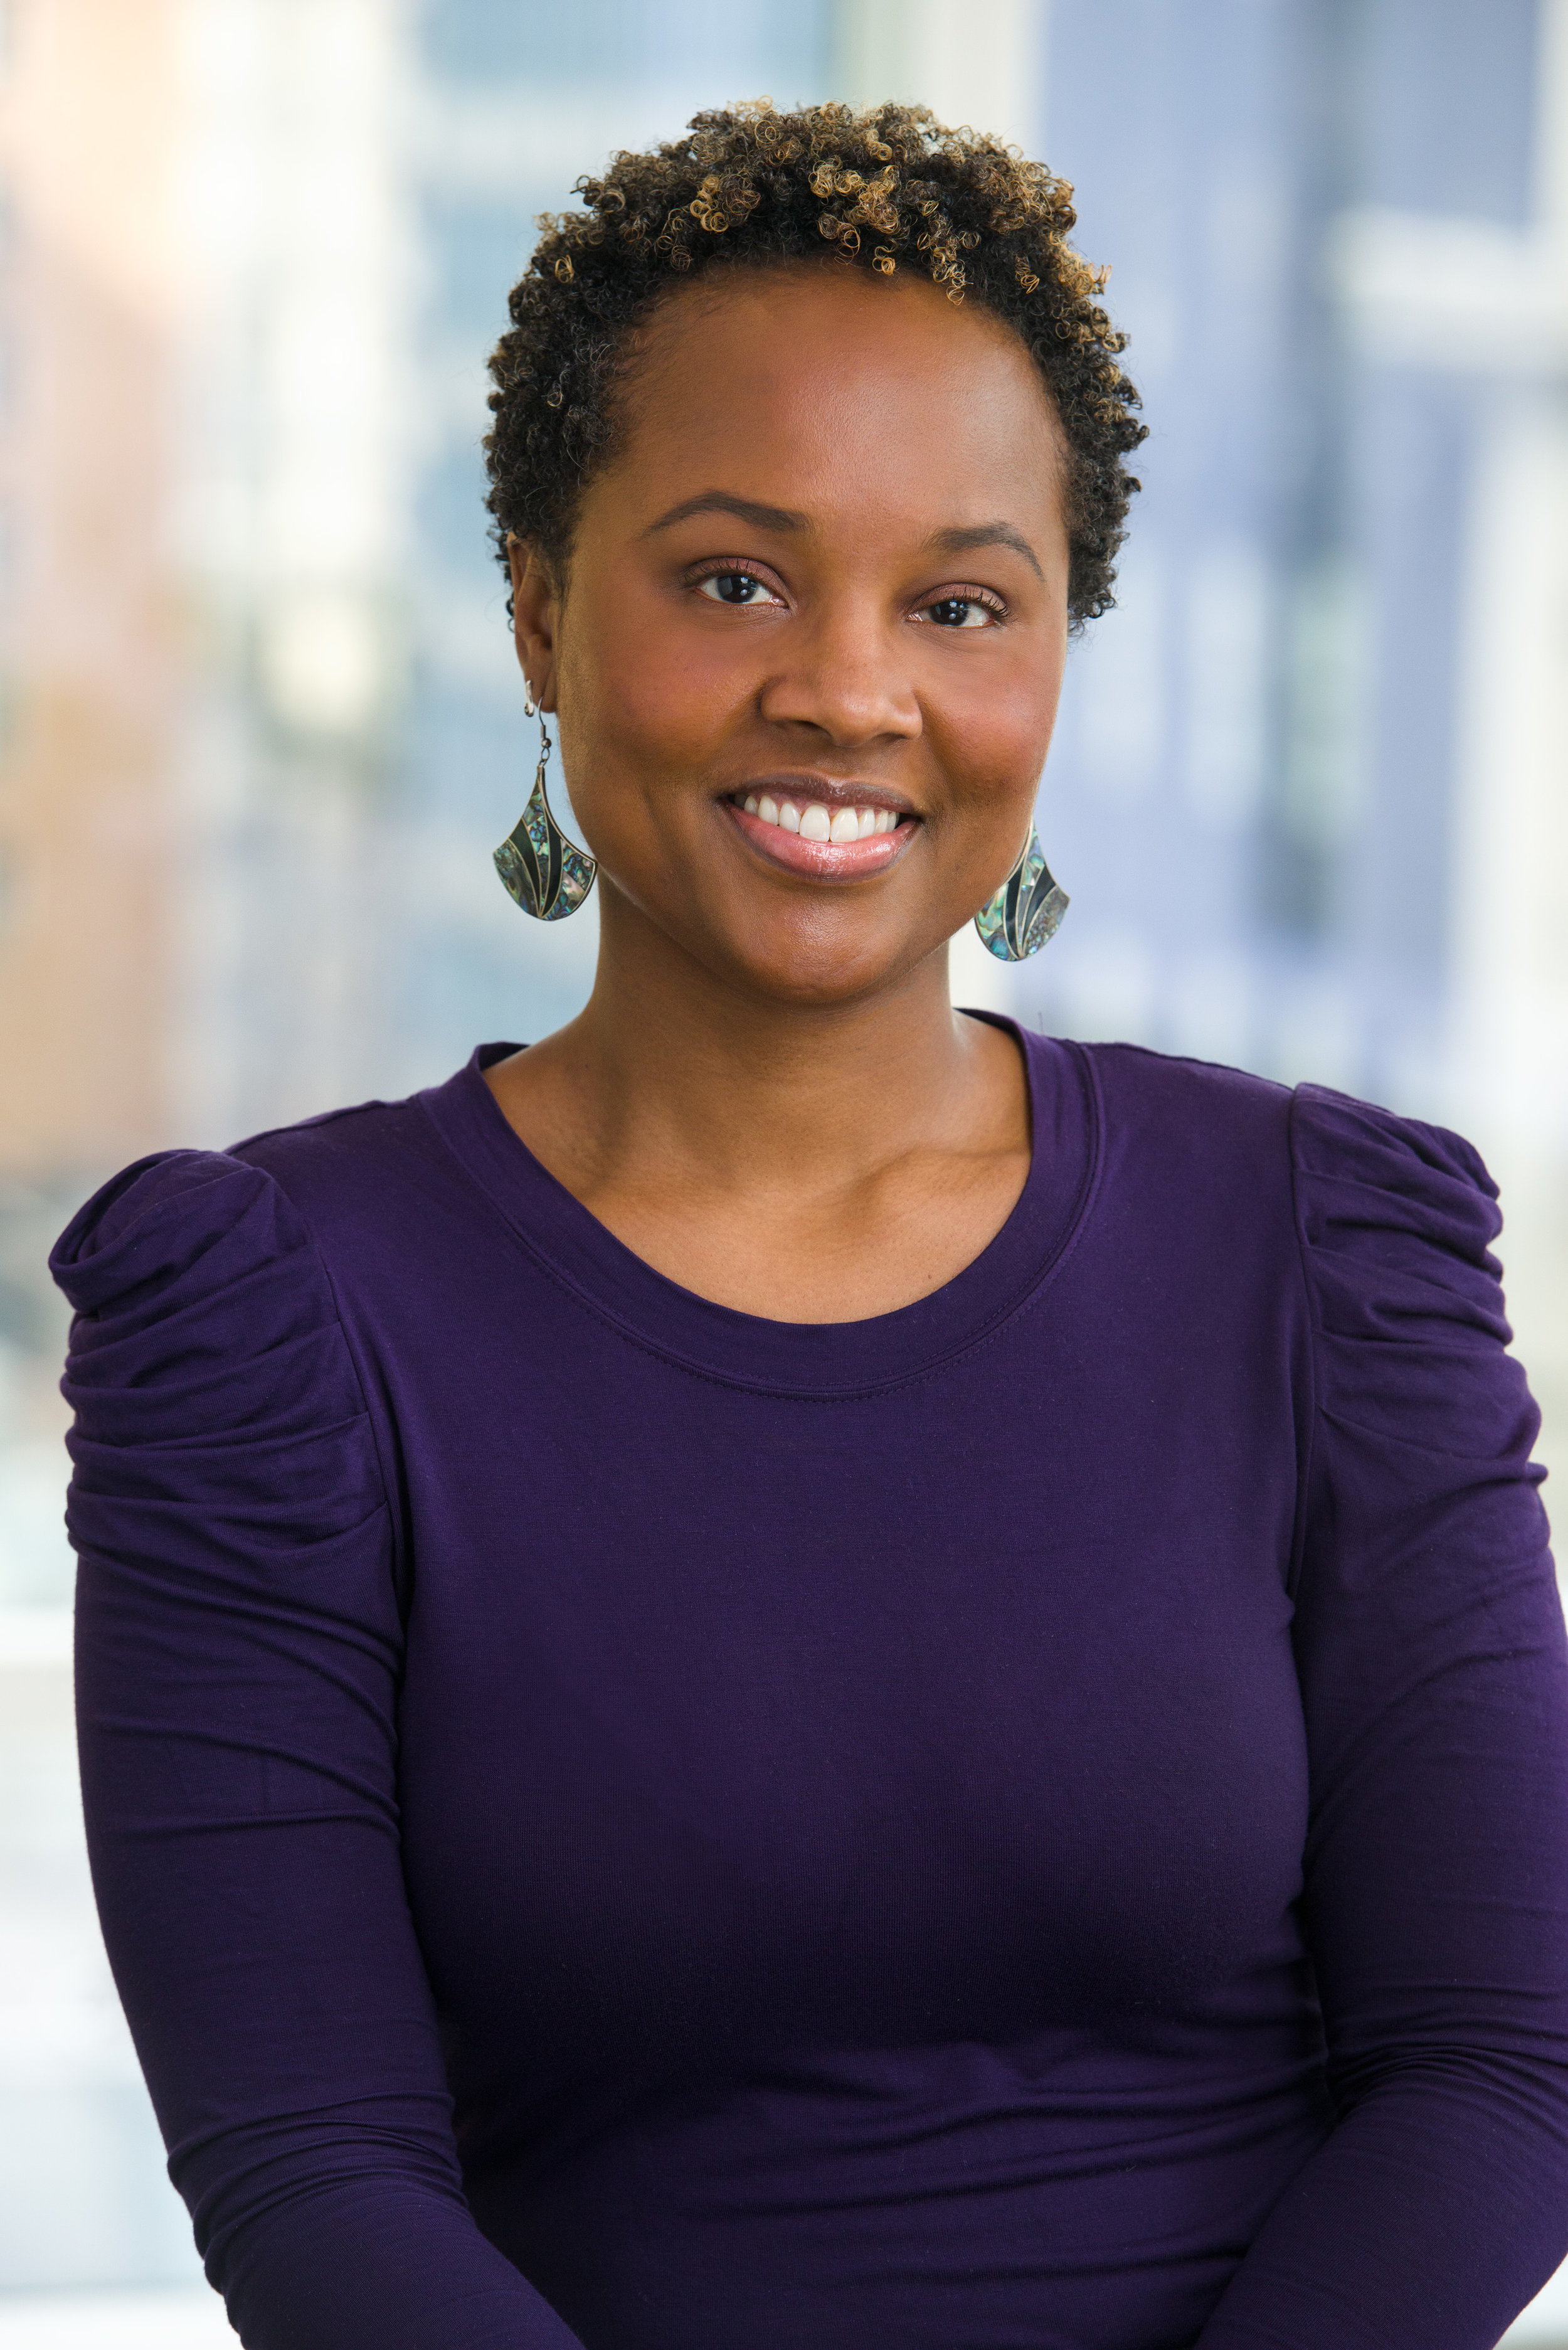 "Kibi Anderson - Kibi Anderson is an LA based thought leader and accomplished strategy and business development executive with more than 14 years of experience in media, entertainment and entrepreneurship. Kibi is recognized for her ability to mix comprehensive industry knowledge, entrepreneurial acumen, and strong networking and communications skills to help deploy impactful initiatives that drive growth.As President of Red Table Talk Inc., Kibi works directly alongside actress and producer Jada Pinkett Smith, and is at the helm of driving growth, strategic partnerships, and assessing new business opportunities for the global brand. Prior to joining Red Table Talk, Kibi was the Head of Digital Strategy and Business Development at Bloomberg Media where she oversaw new partnerships and strategic relationships, and assessed new business opportunities focused on growing the global business. Kibi is also cofounder of Blazon Brush, a ""For the Culture"